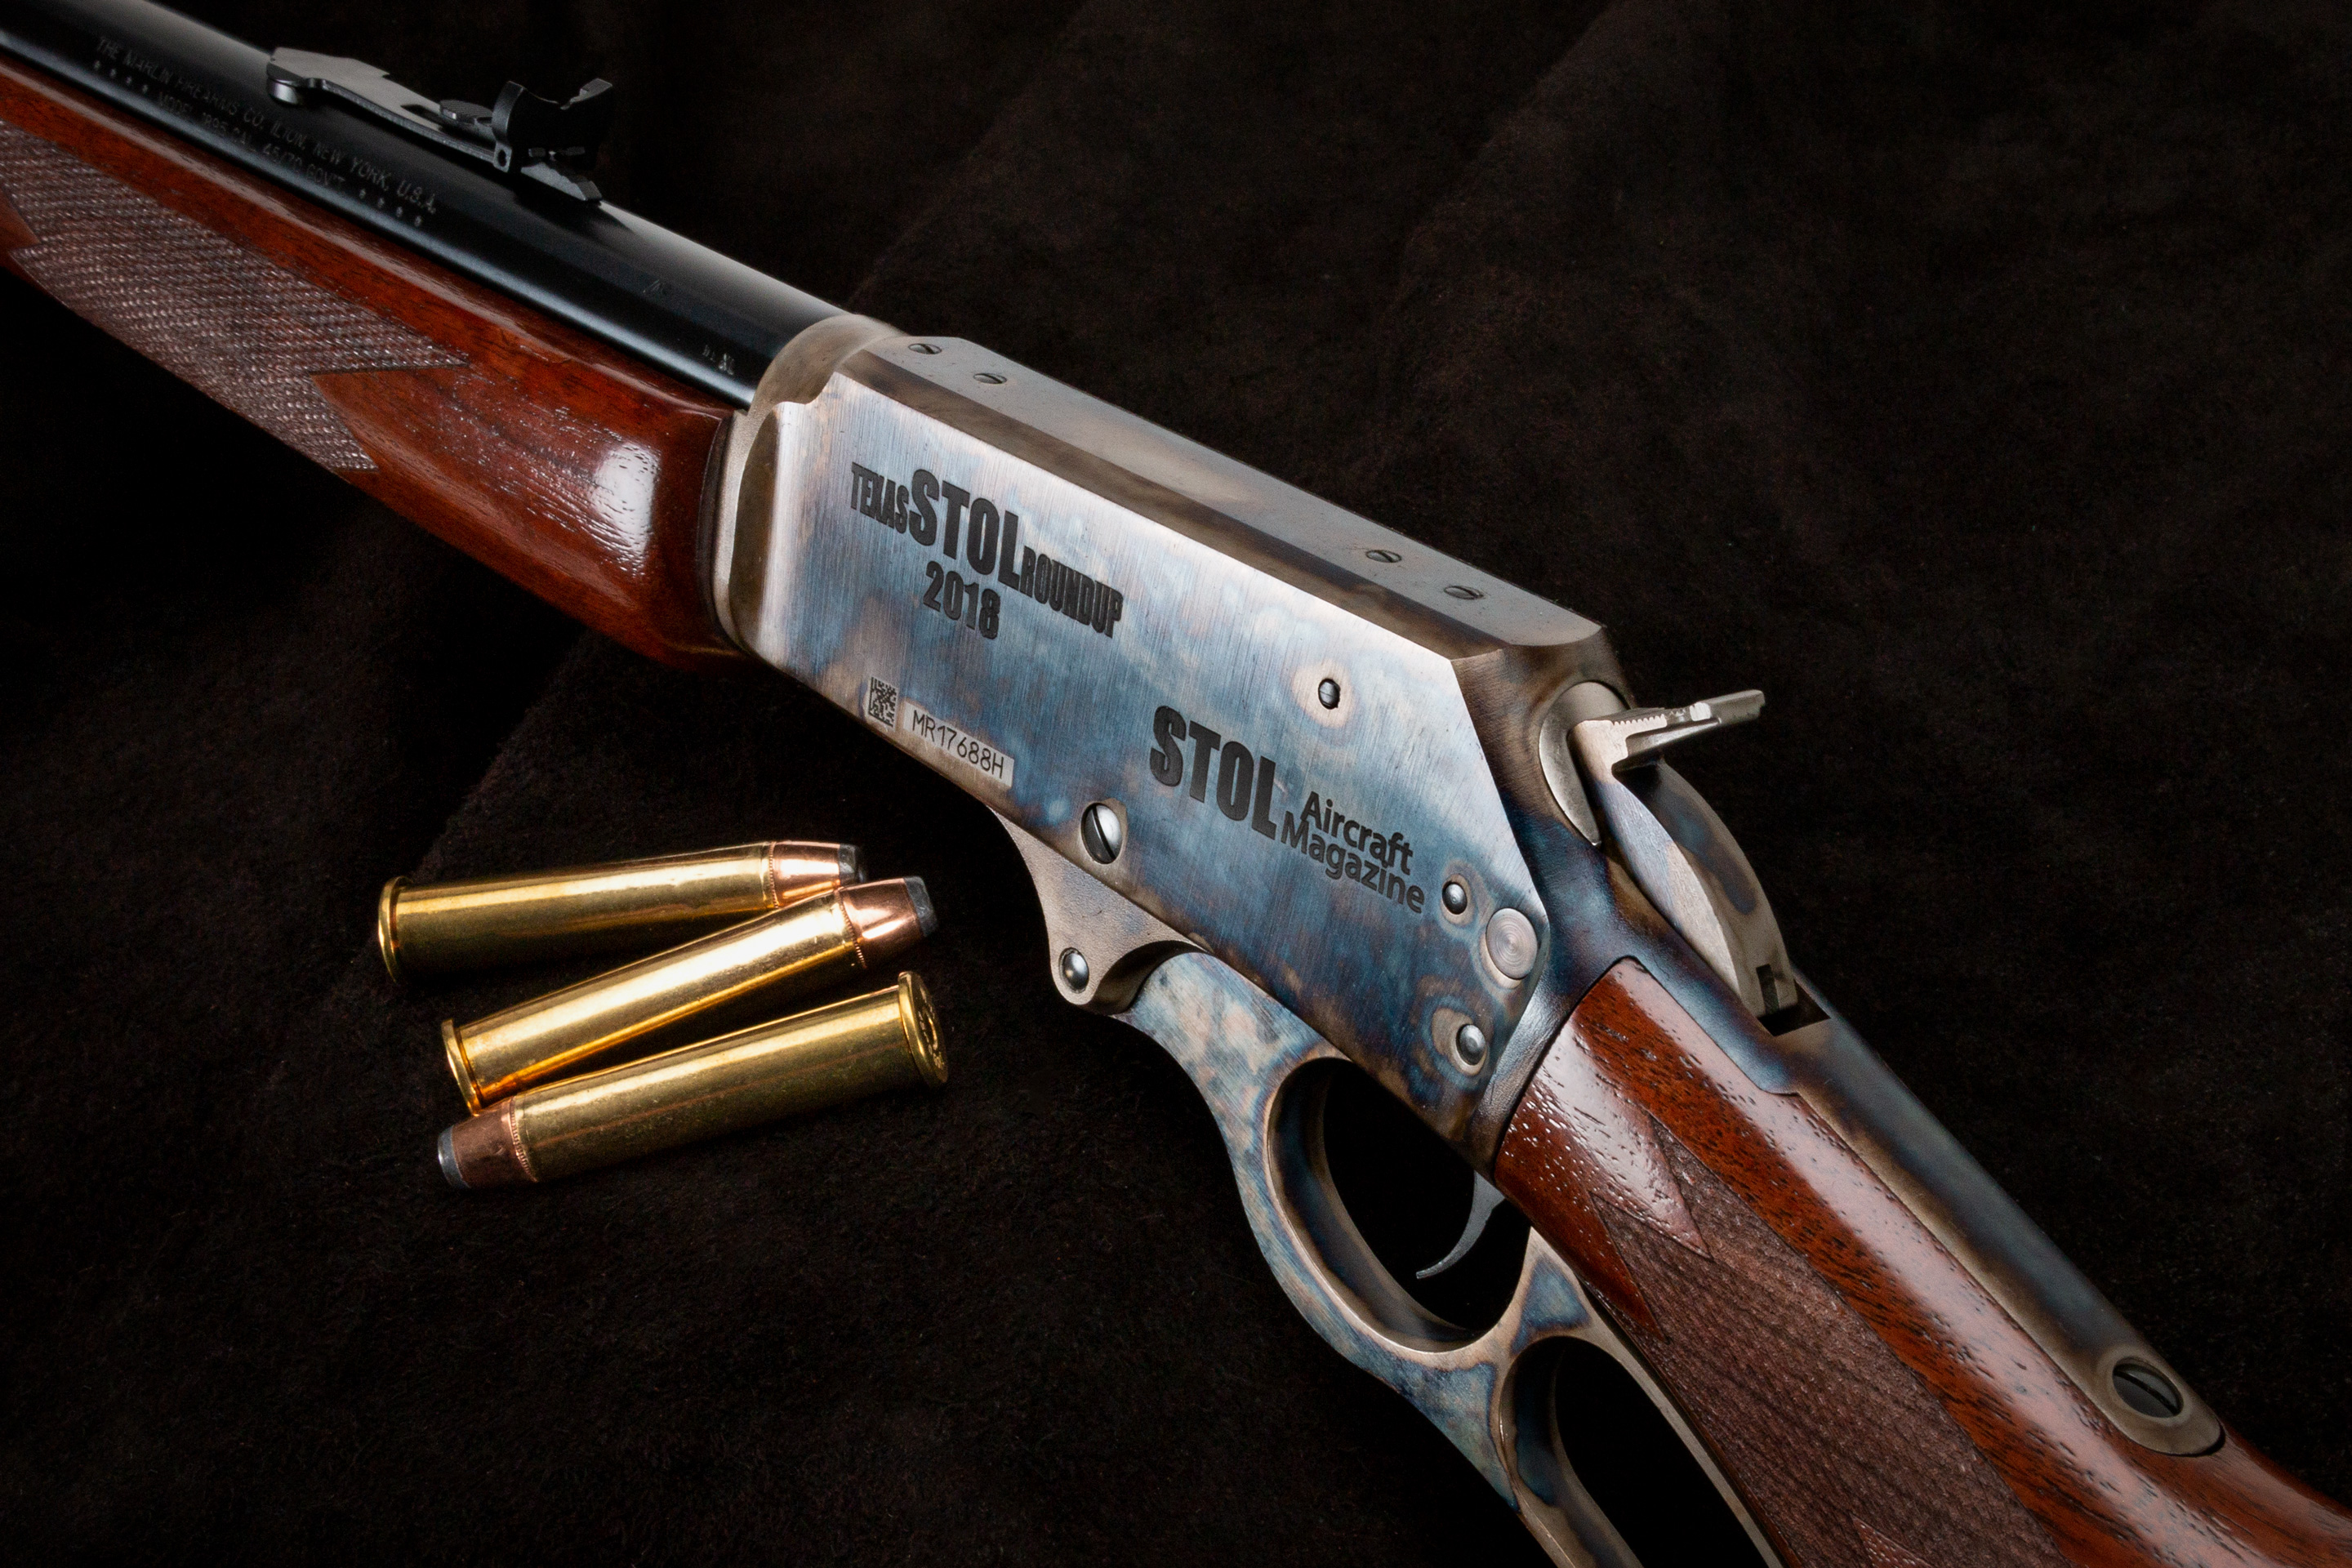 Turnbull Marlin 1895 engraved for STOL Aircraft Magazine and Texas STOL Roundup